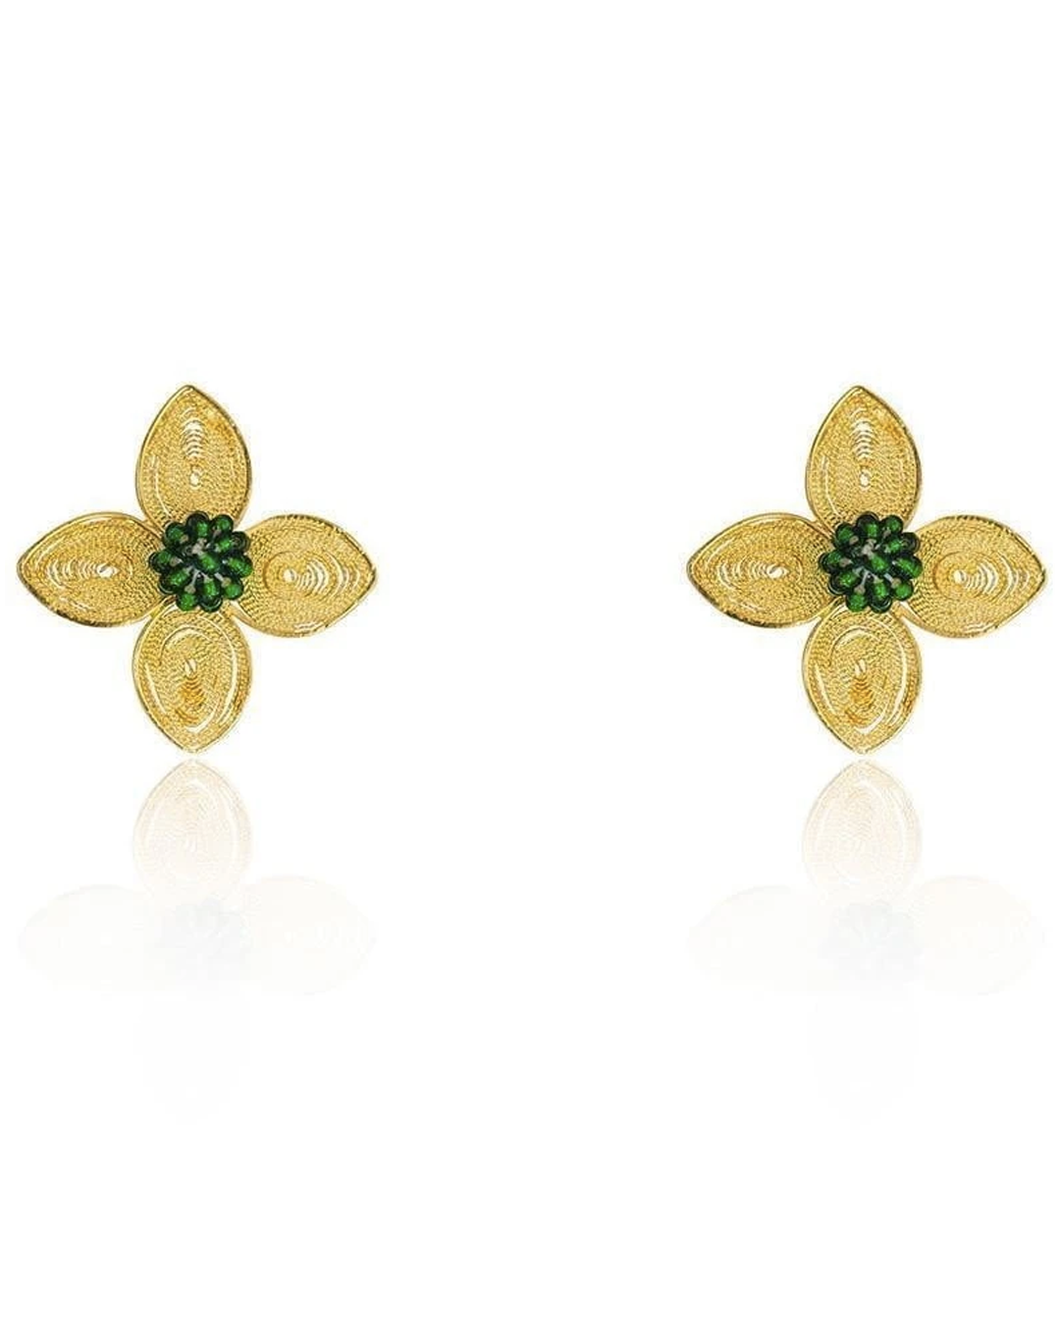 Filigree Colibri Flower earrings